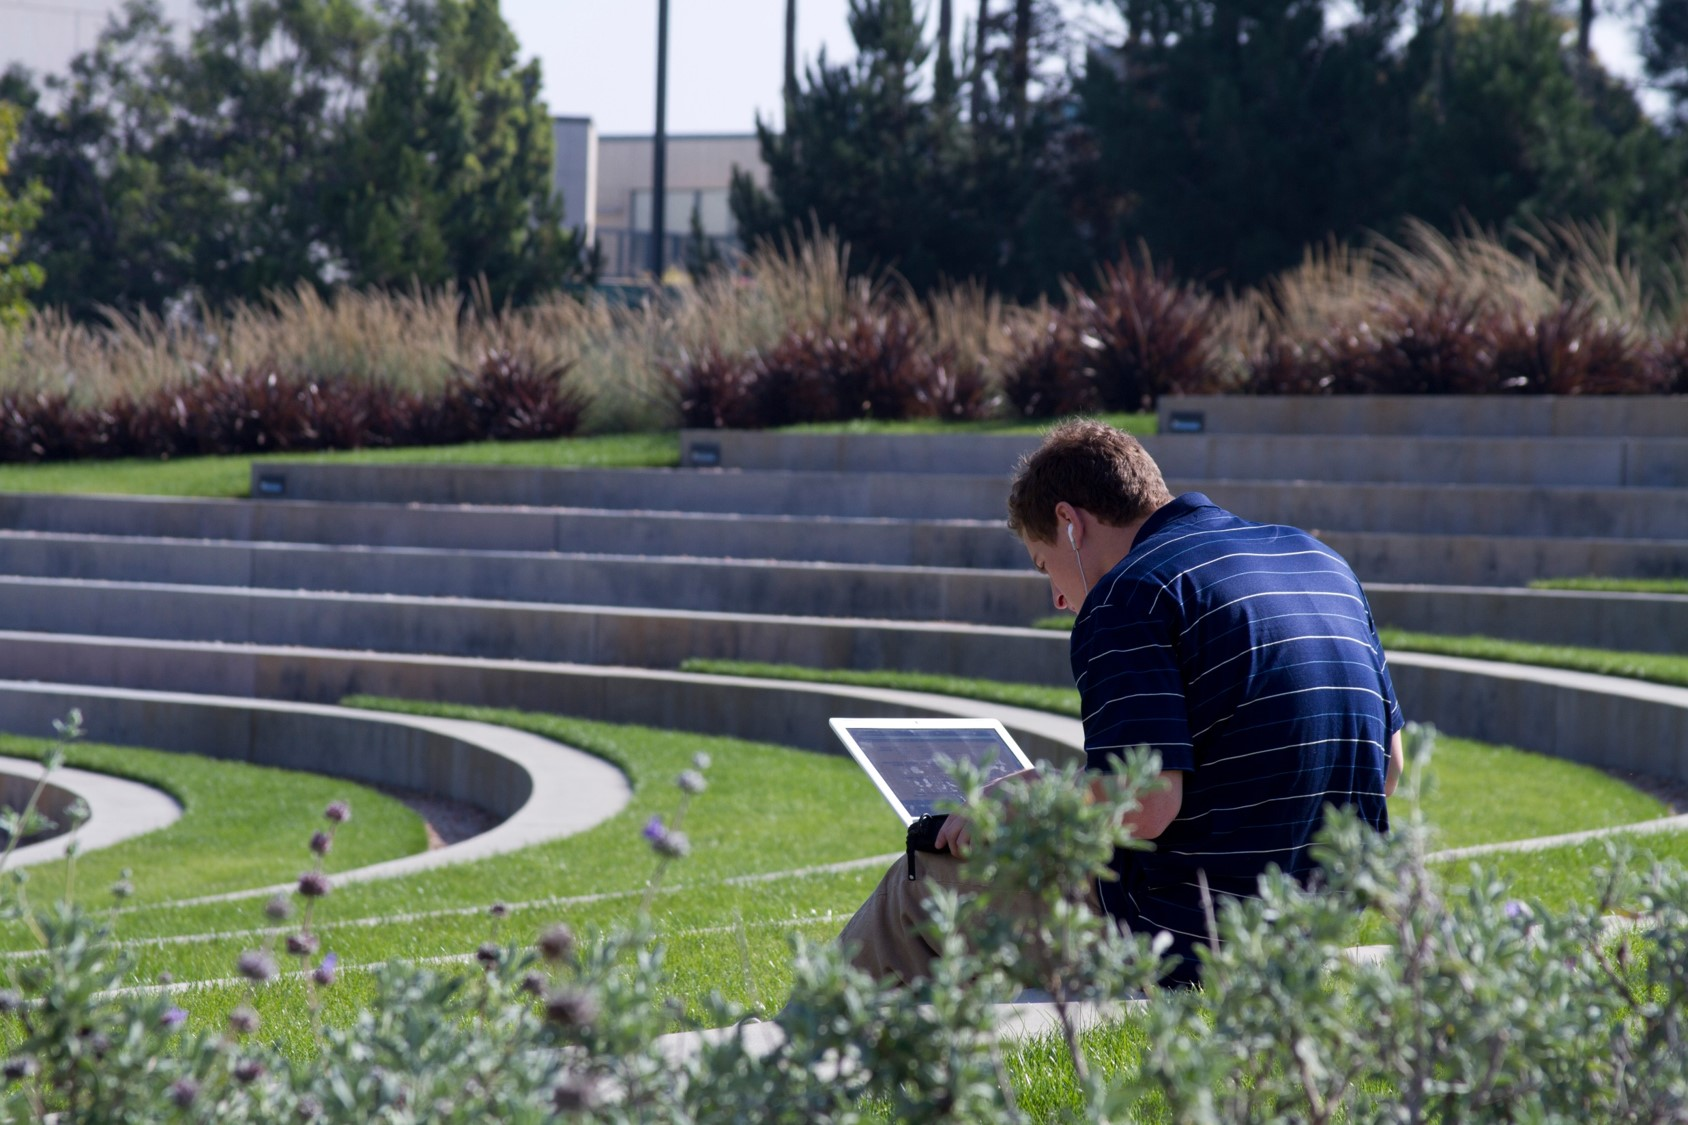 Student working on laptop outside the library